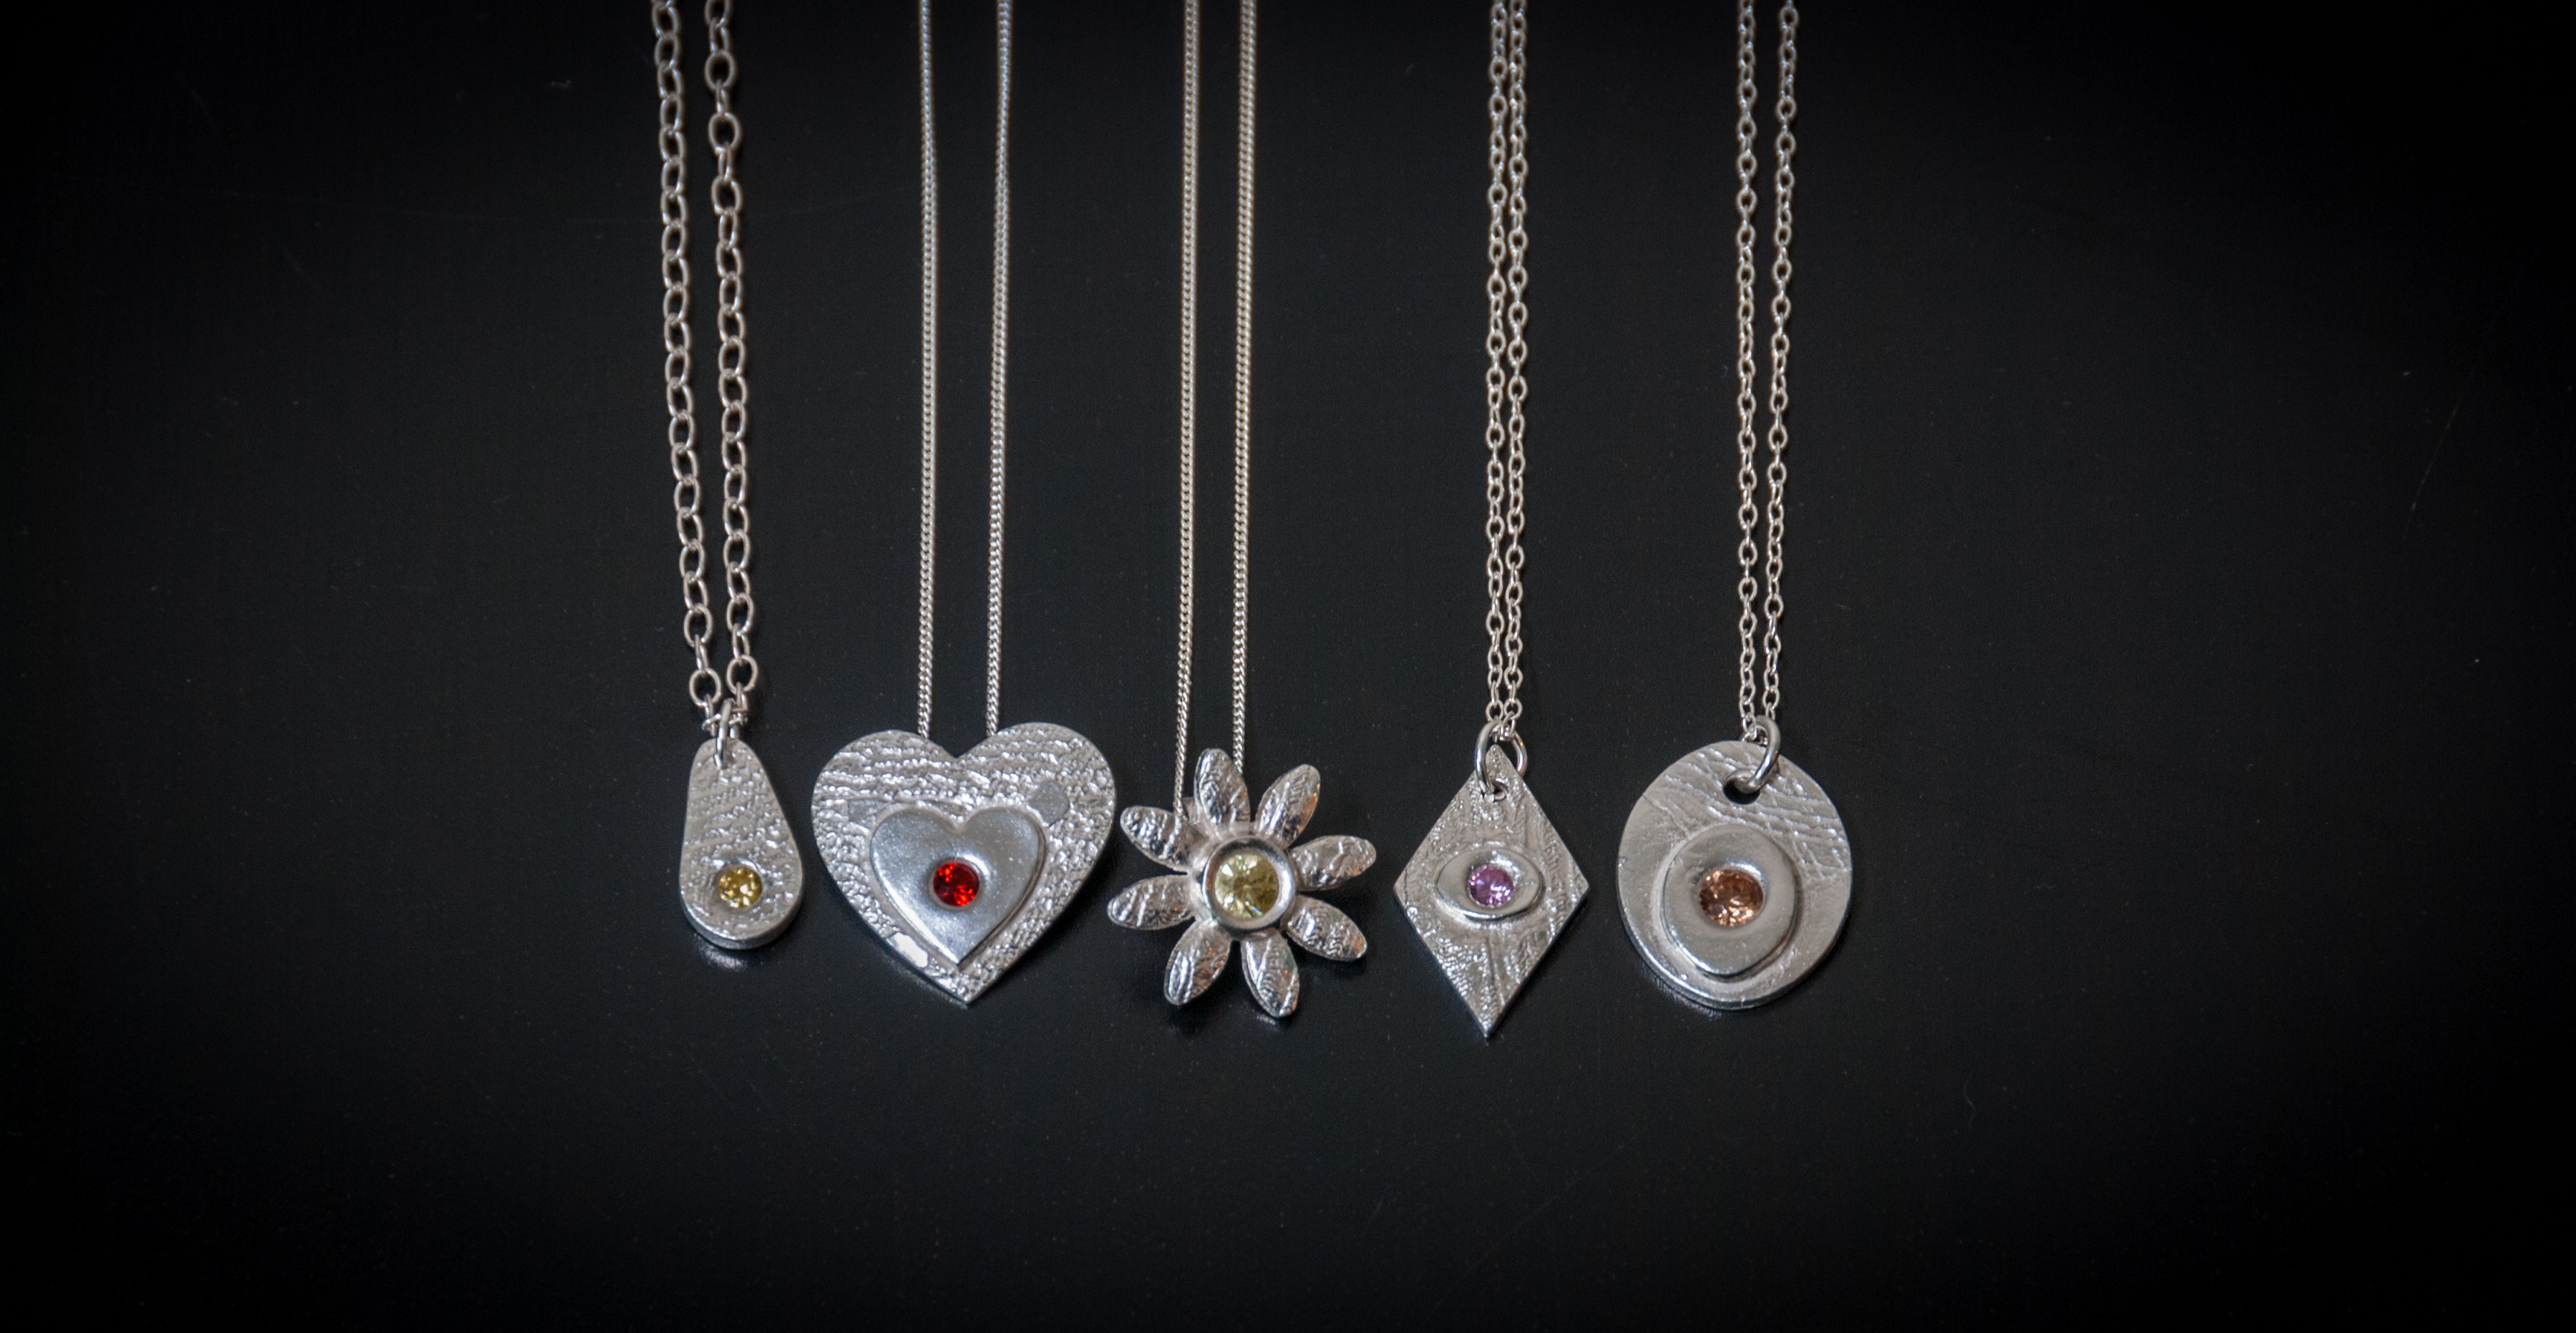 Introduction to Silver Clay Jewellery Making